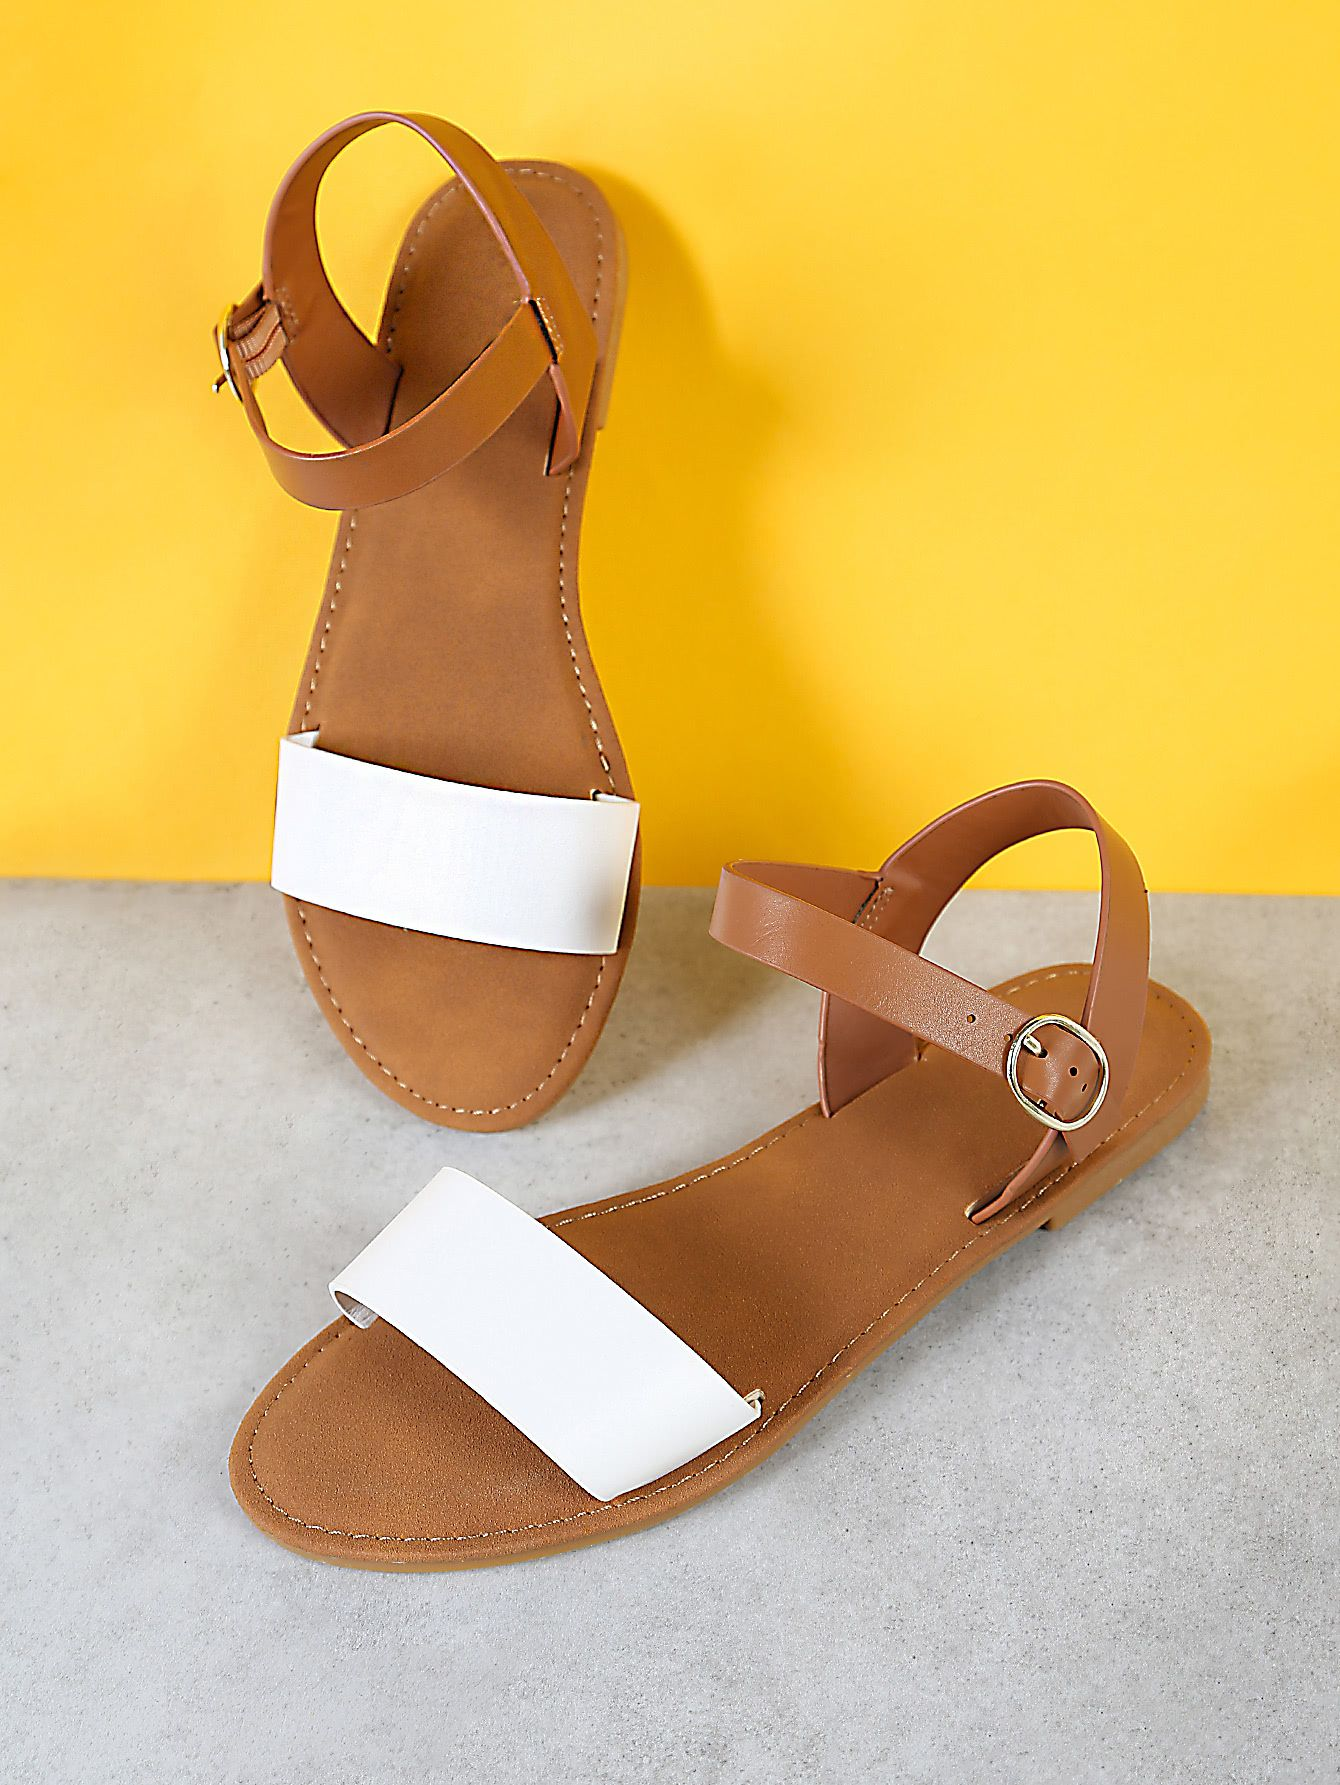 a6df870e29e008 Sling Back Ankle Strap Single Band Flat Sandal WHITE NATURAL -SheIn( Sheinside)